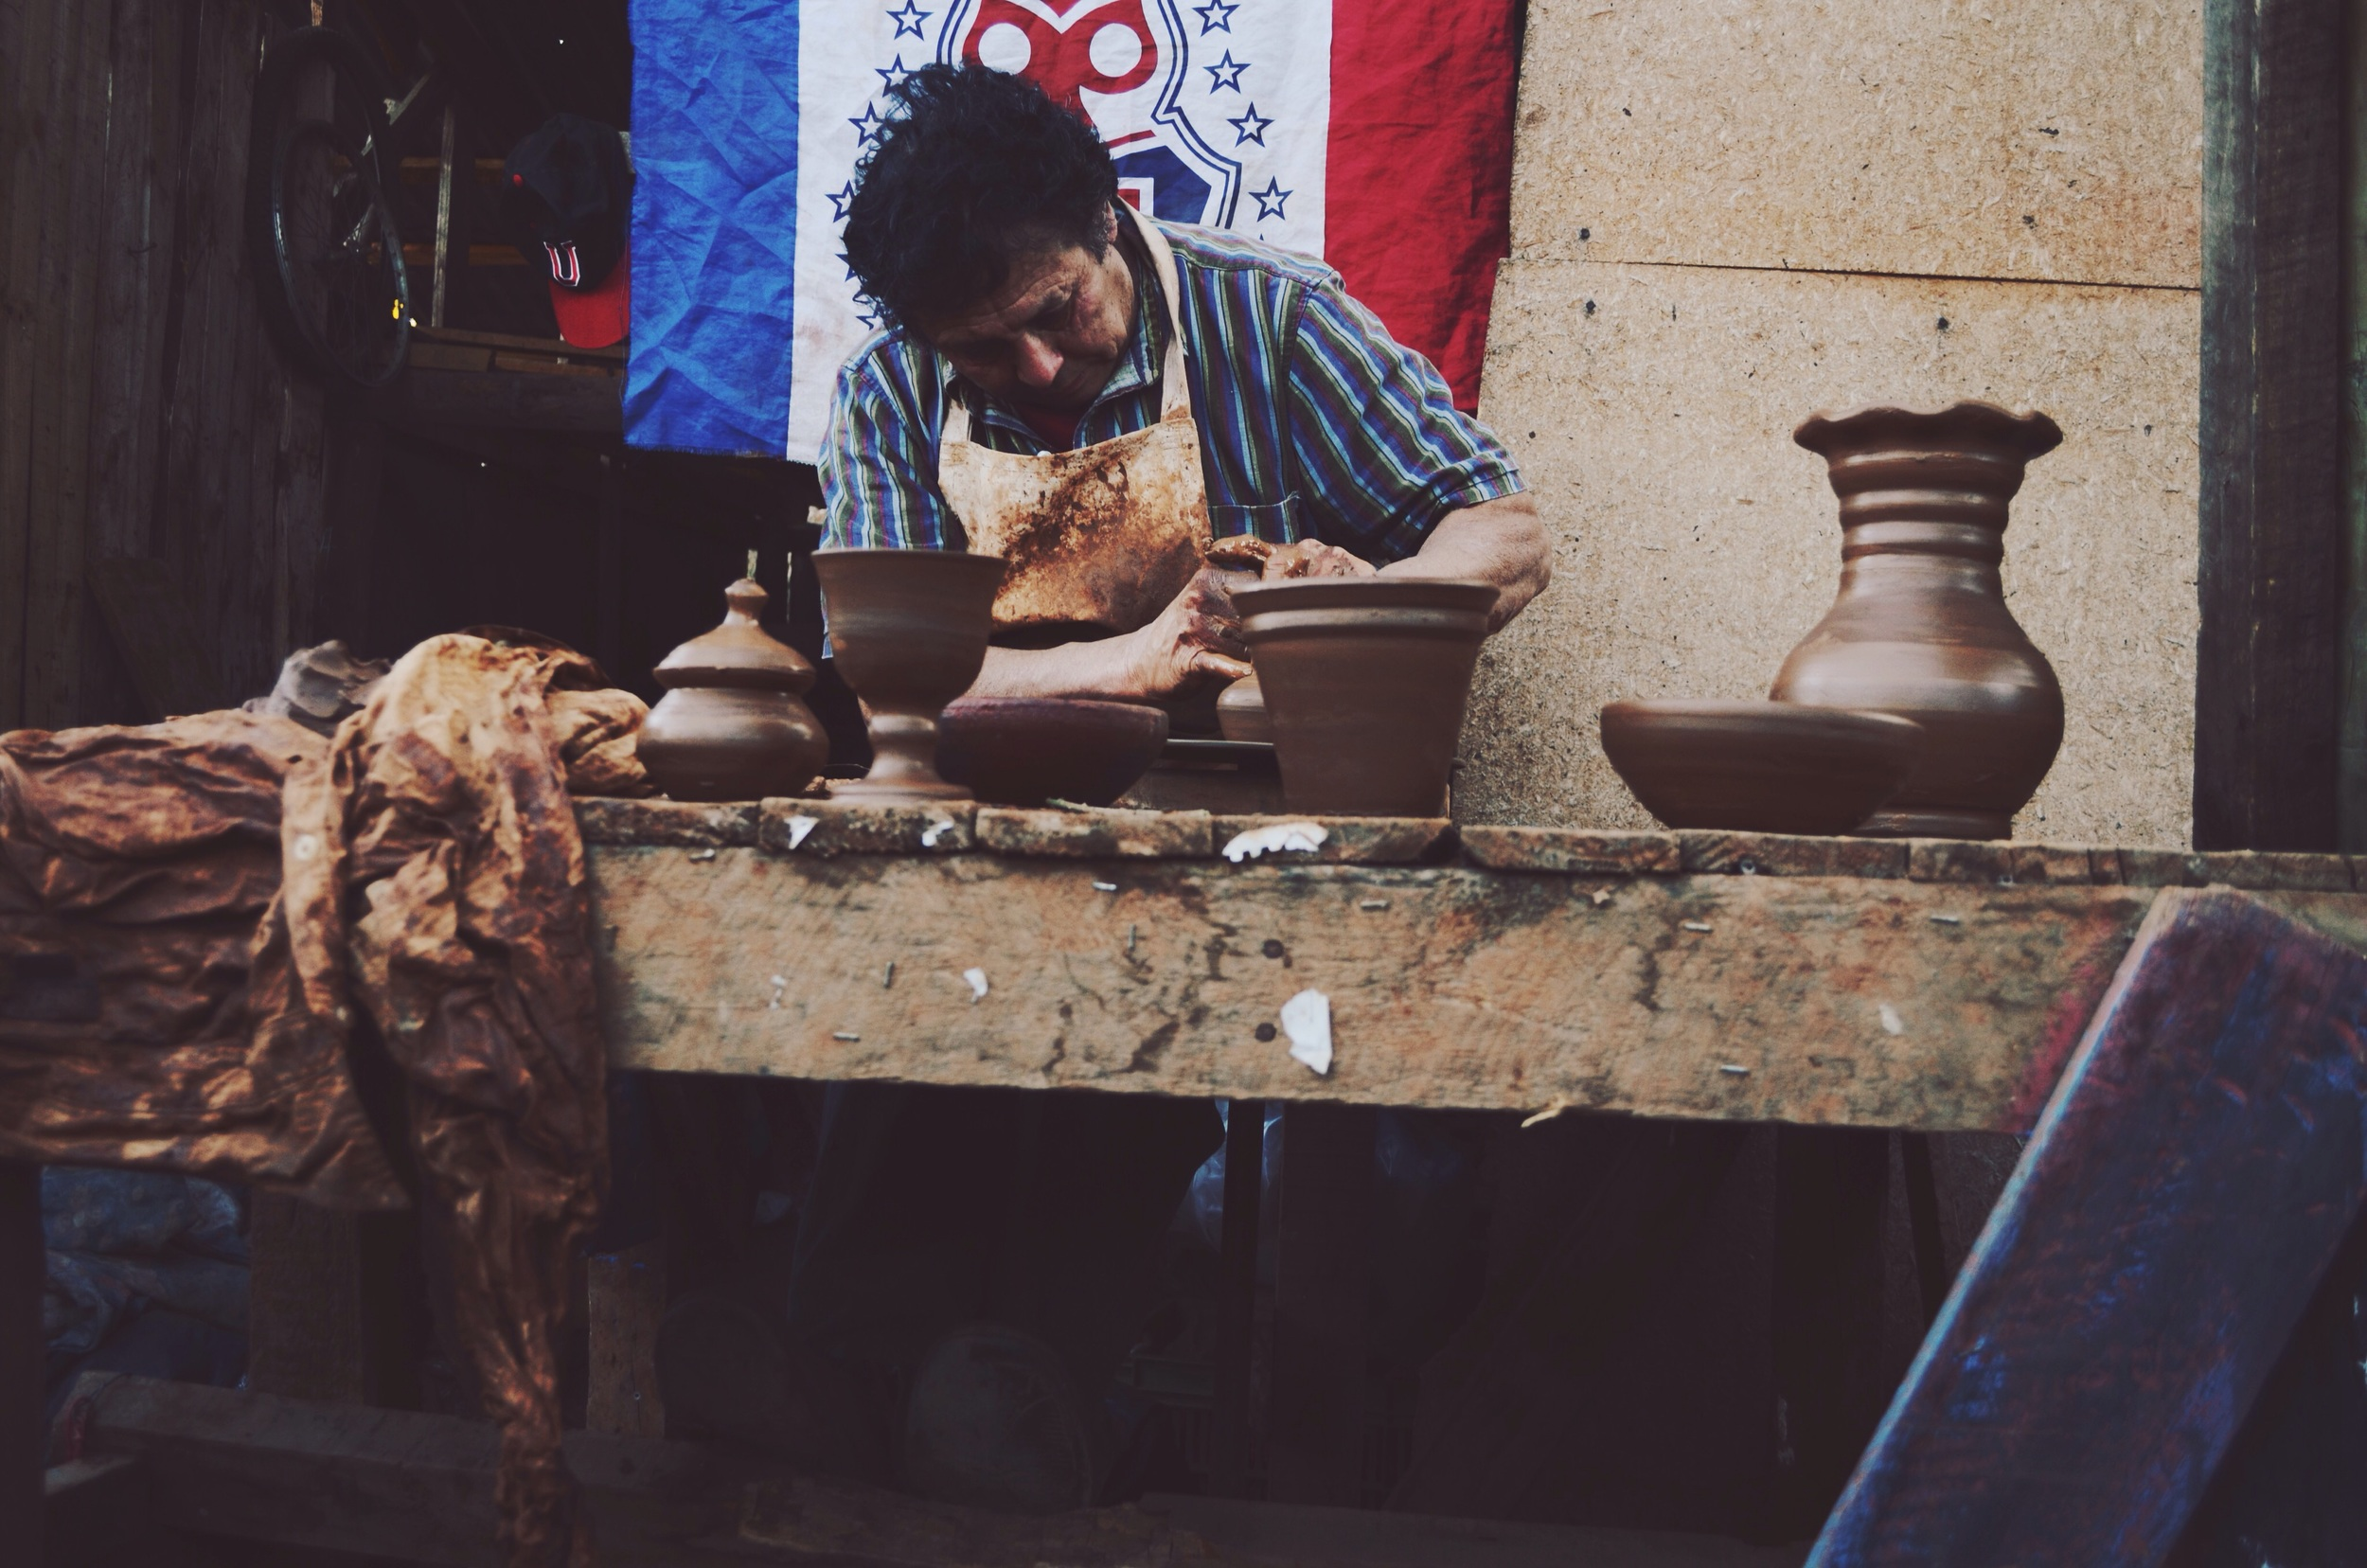 he learned from his father (who learned from his father) how to use the potter's wheel, and he can make up to 200 soup-size bowls in one day.  all of the pottery sitting in front of him he made in the span of about 20 minutes. // 9 may 2015